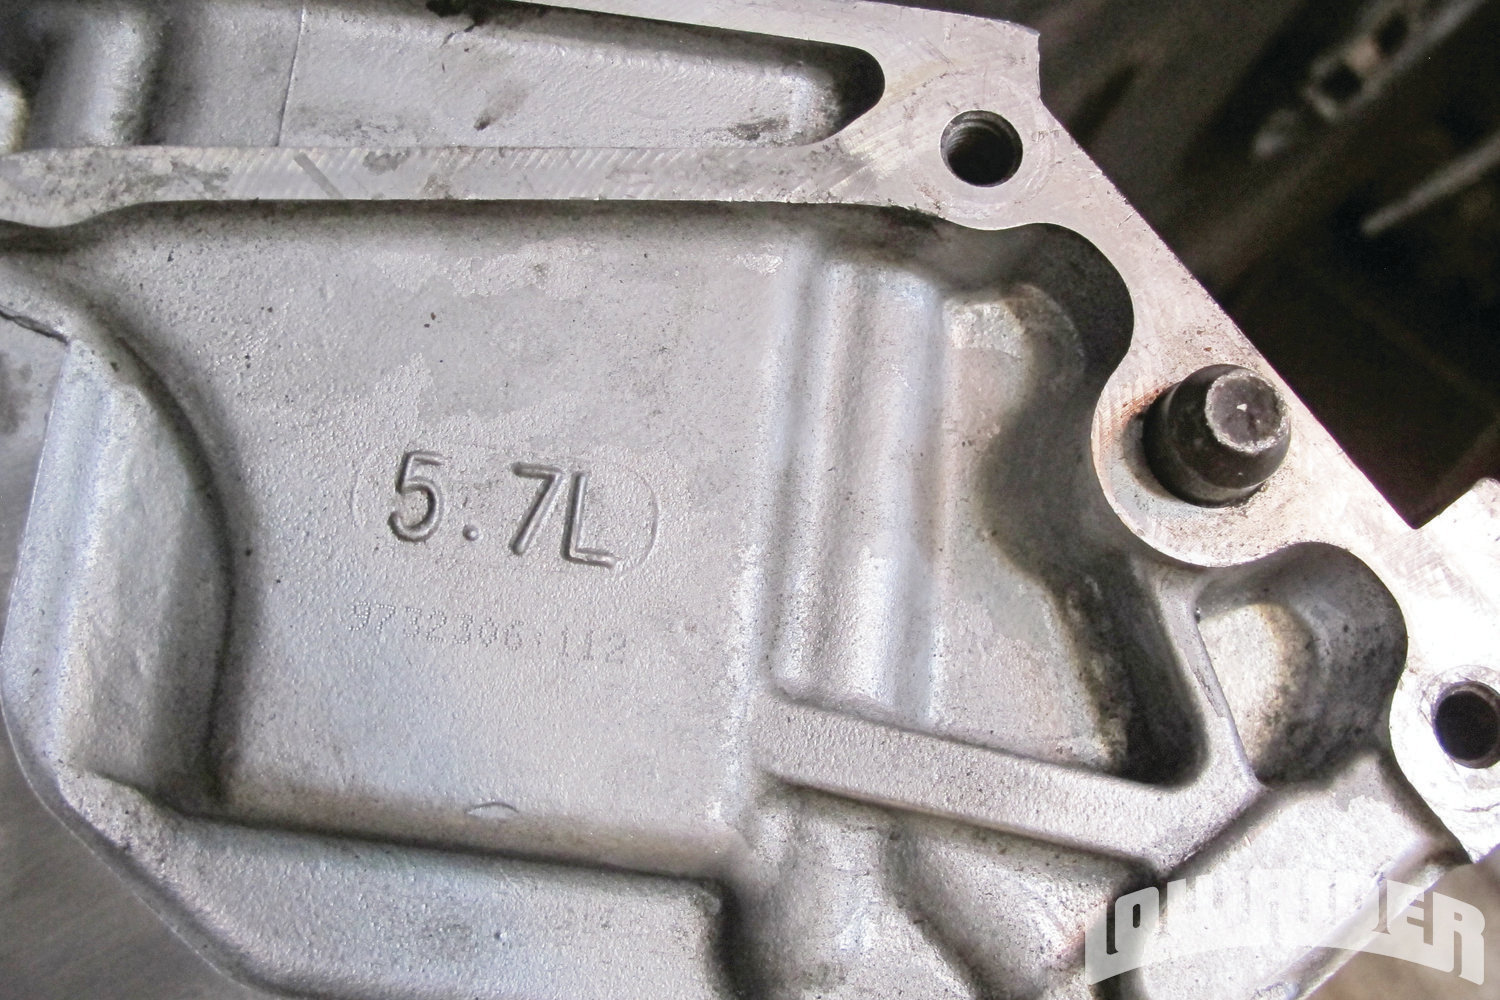 <strong>2</strong>. GM has always stamped their block with the model number. In this case, it's a 5.7 liter block assuring us that it is an LS1. When searching for a used engine, this is a good way to see what type of engine block you are looking at.